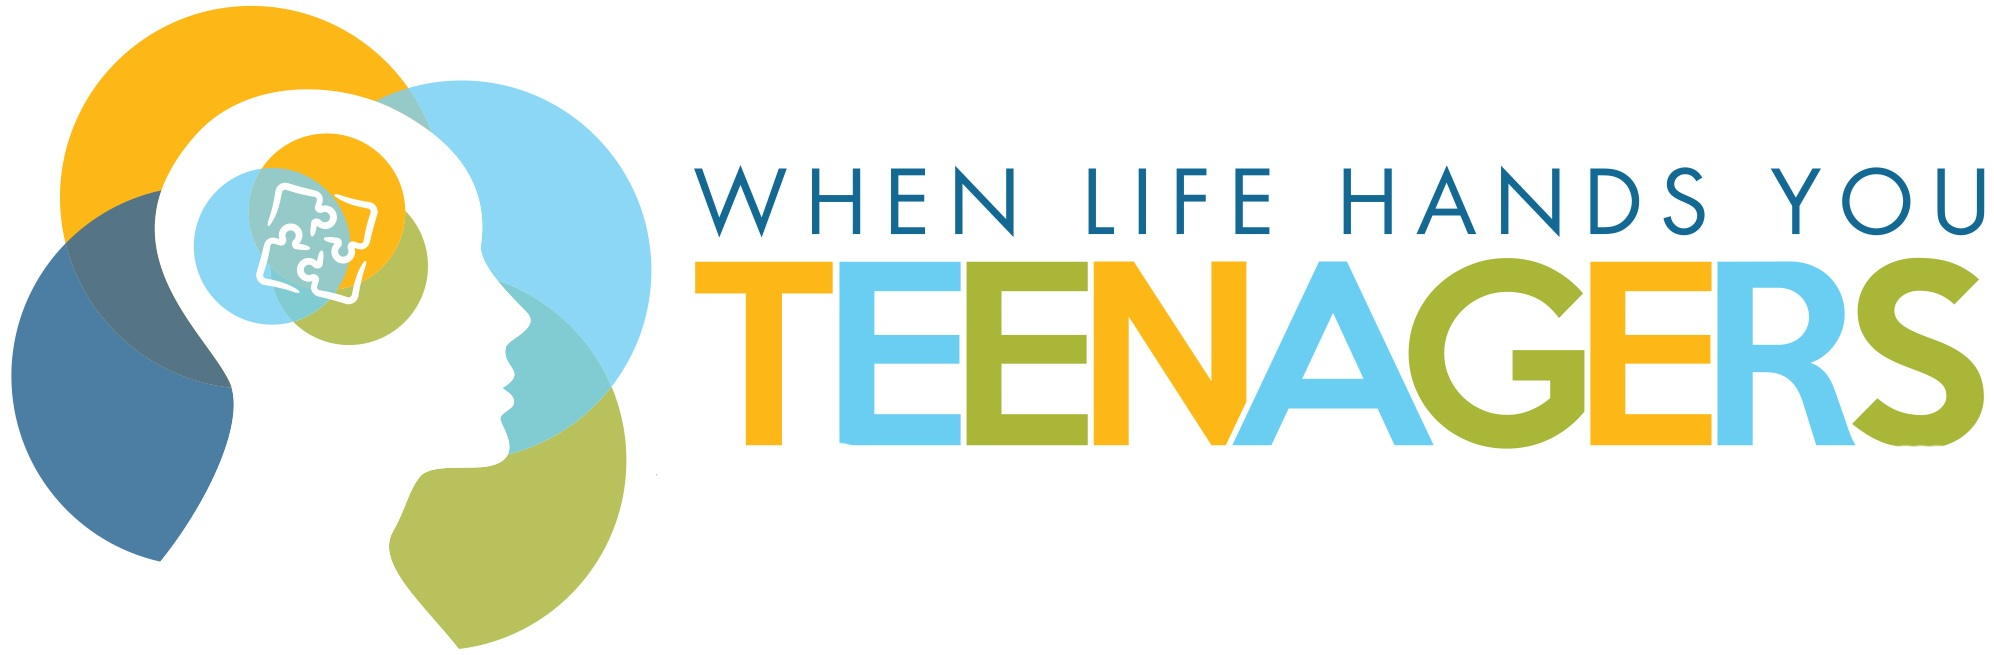 When Life Hands You Teenagers